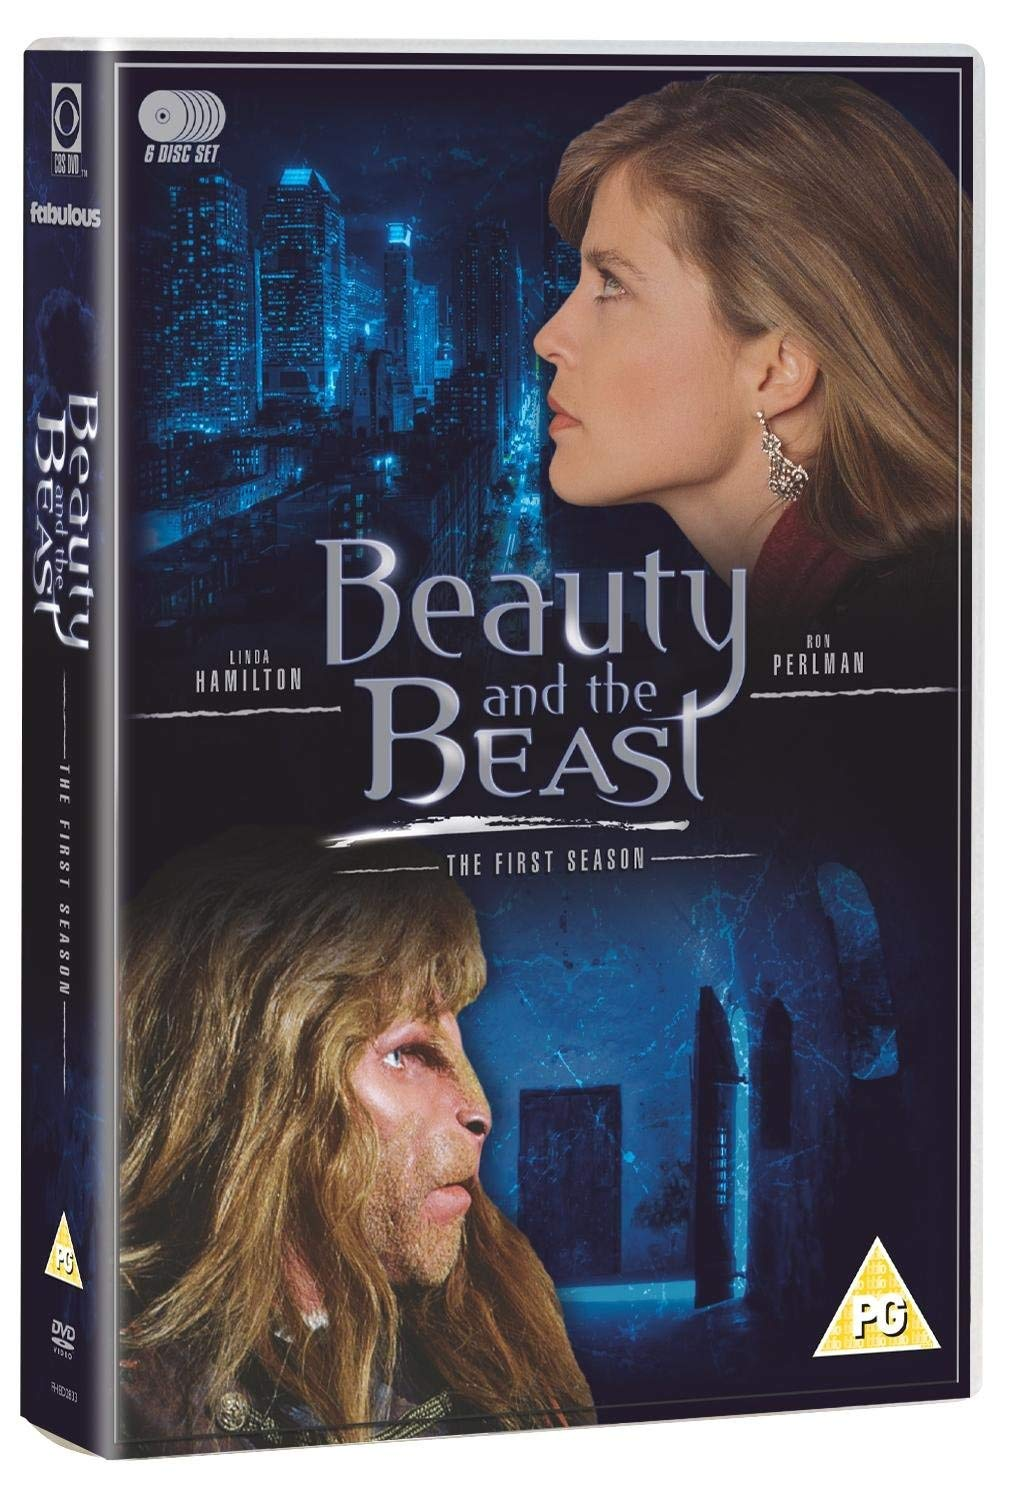 Beauty and the Beast - The First Season DVD 1987 by Linda ...